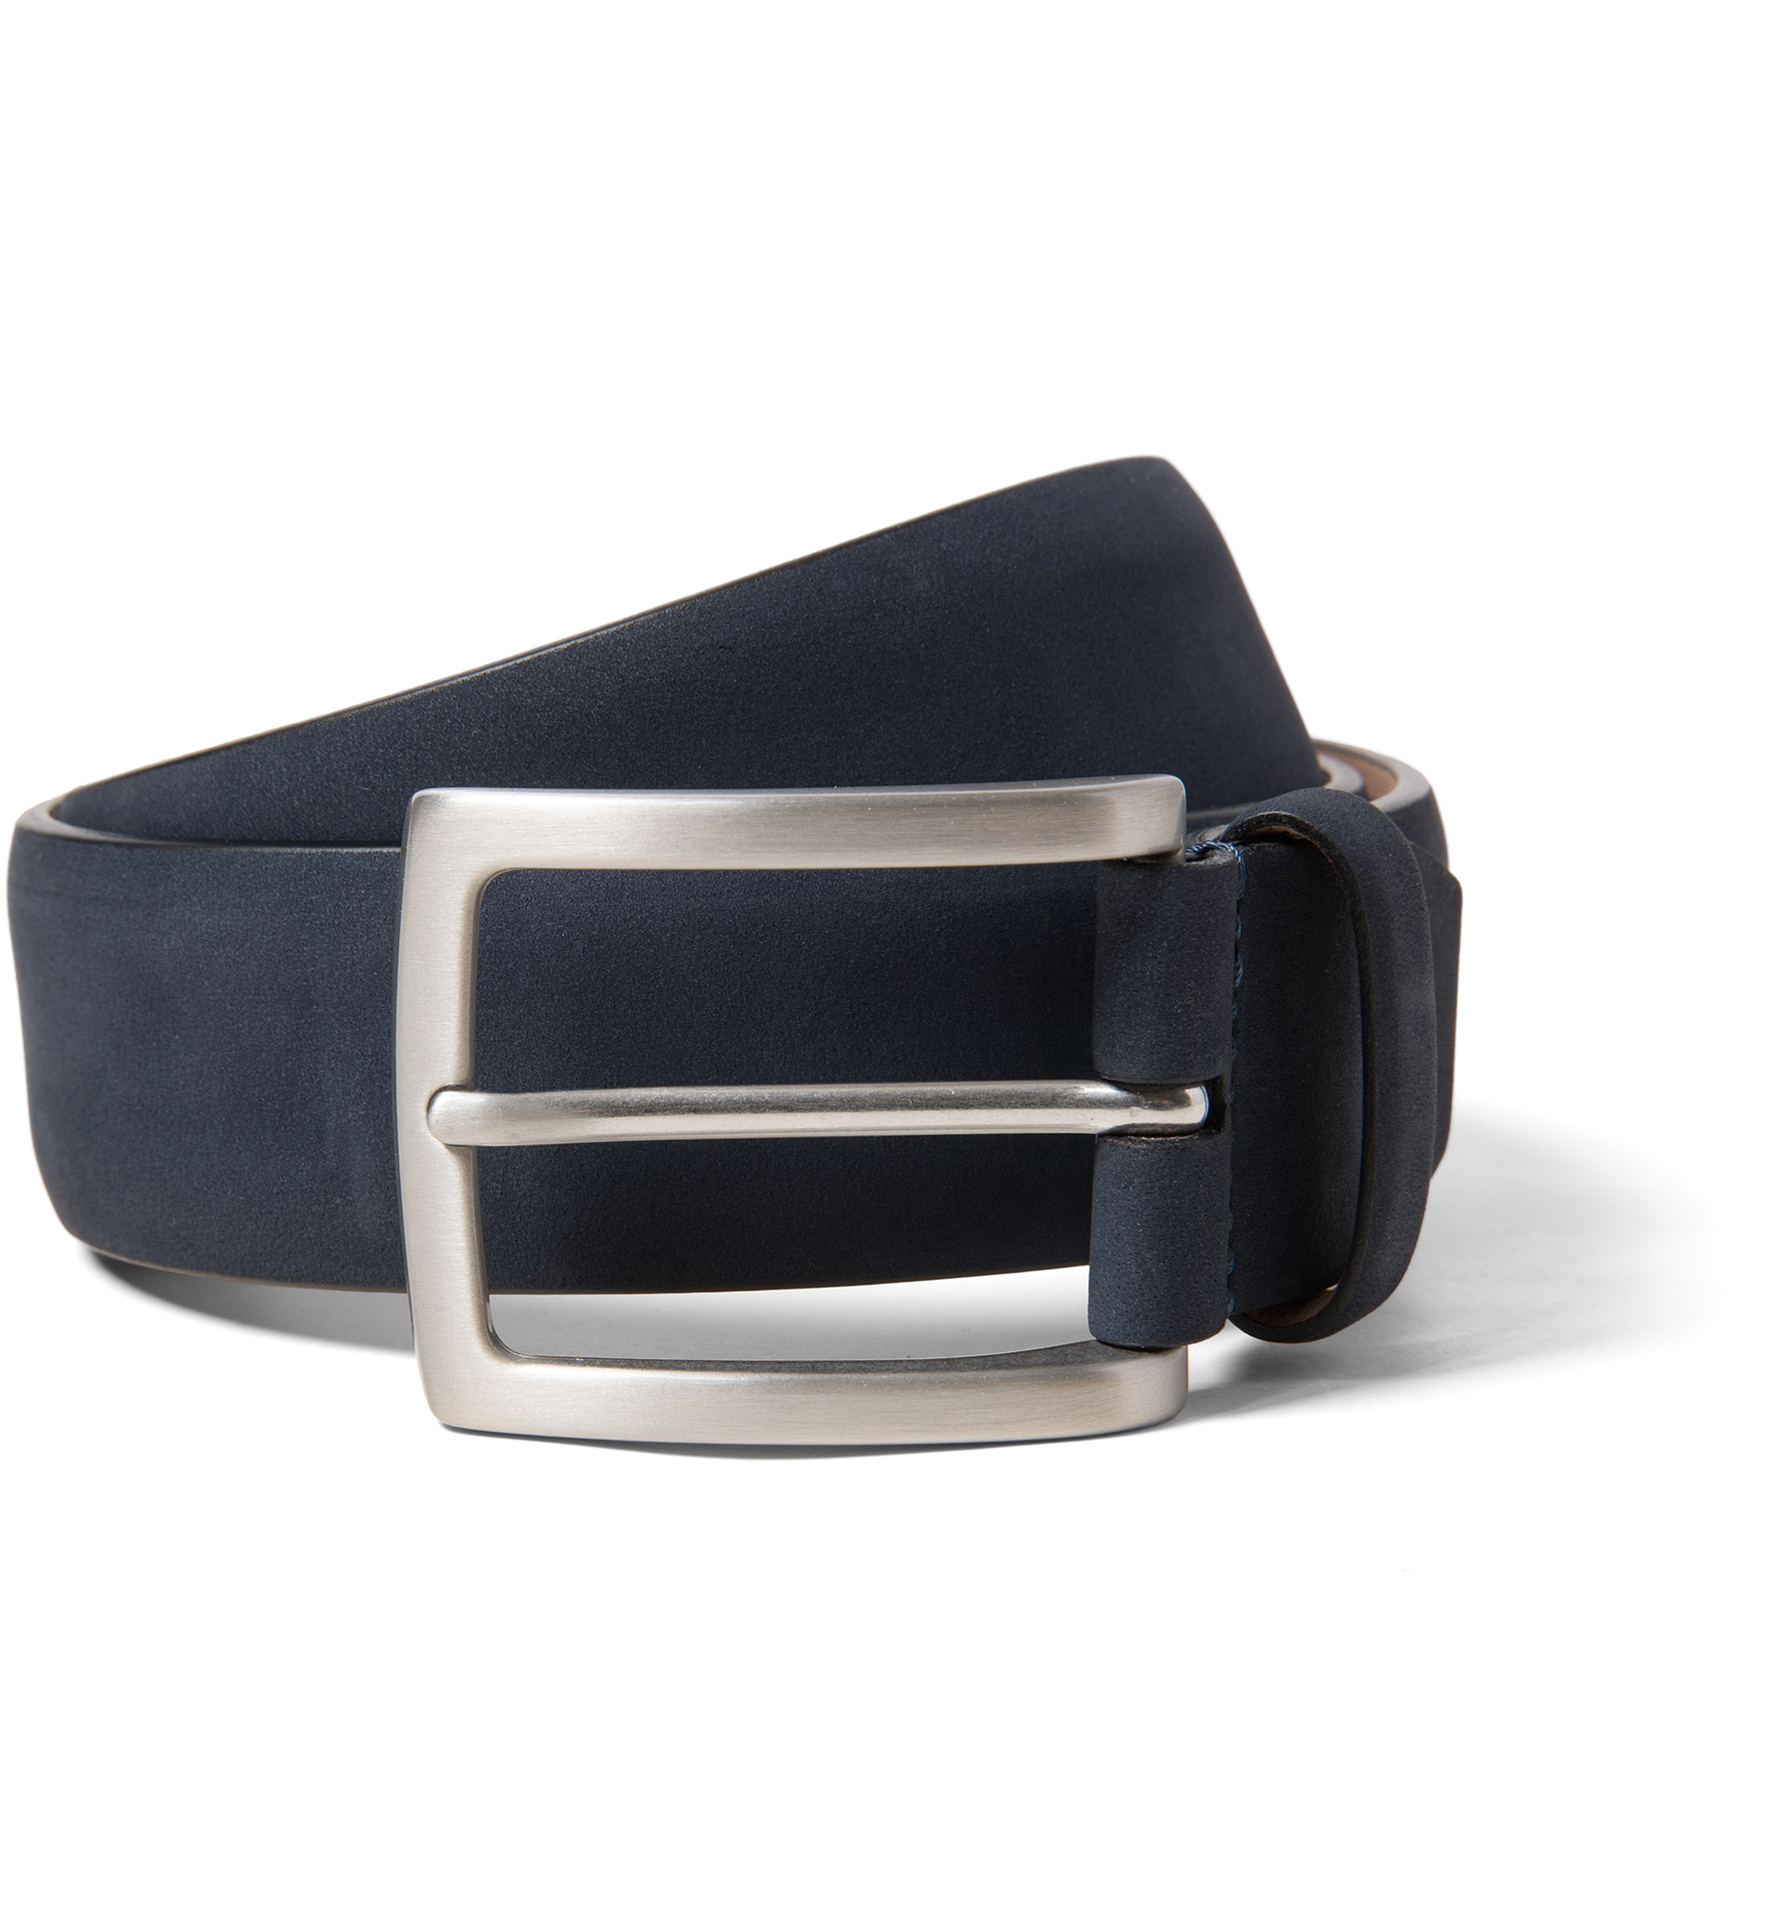 Zoom Image of Navy Nubuck Belt